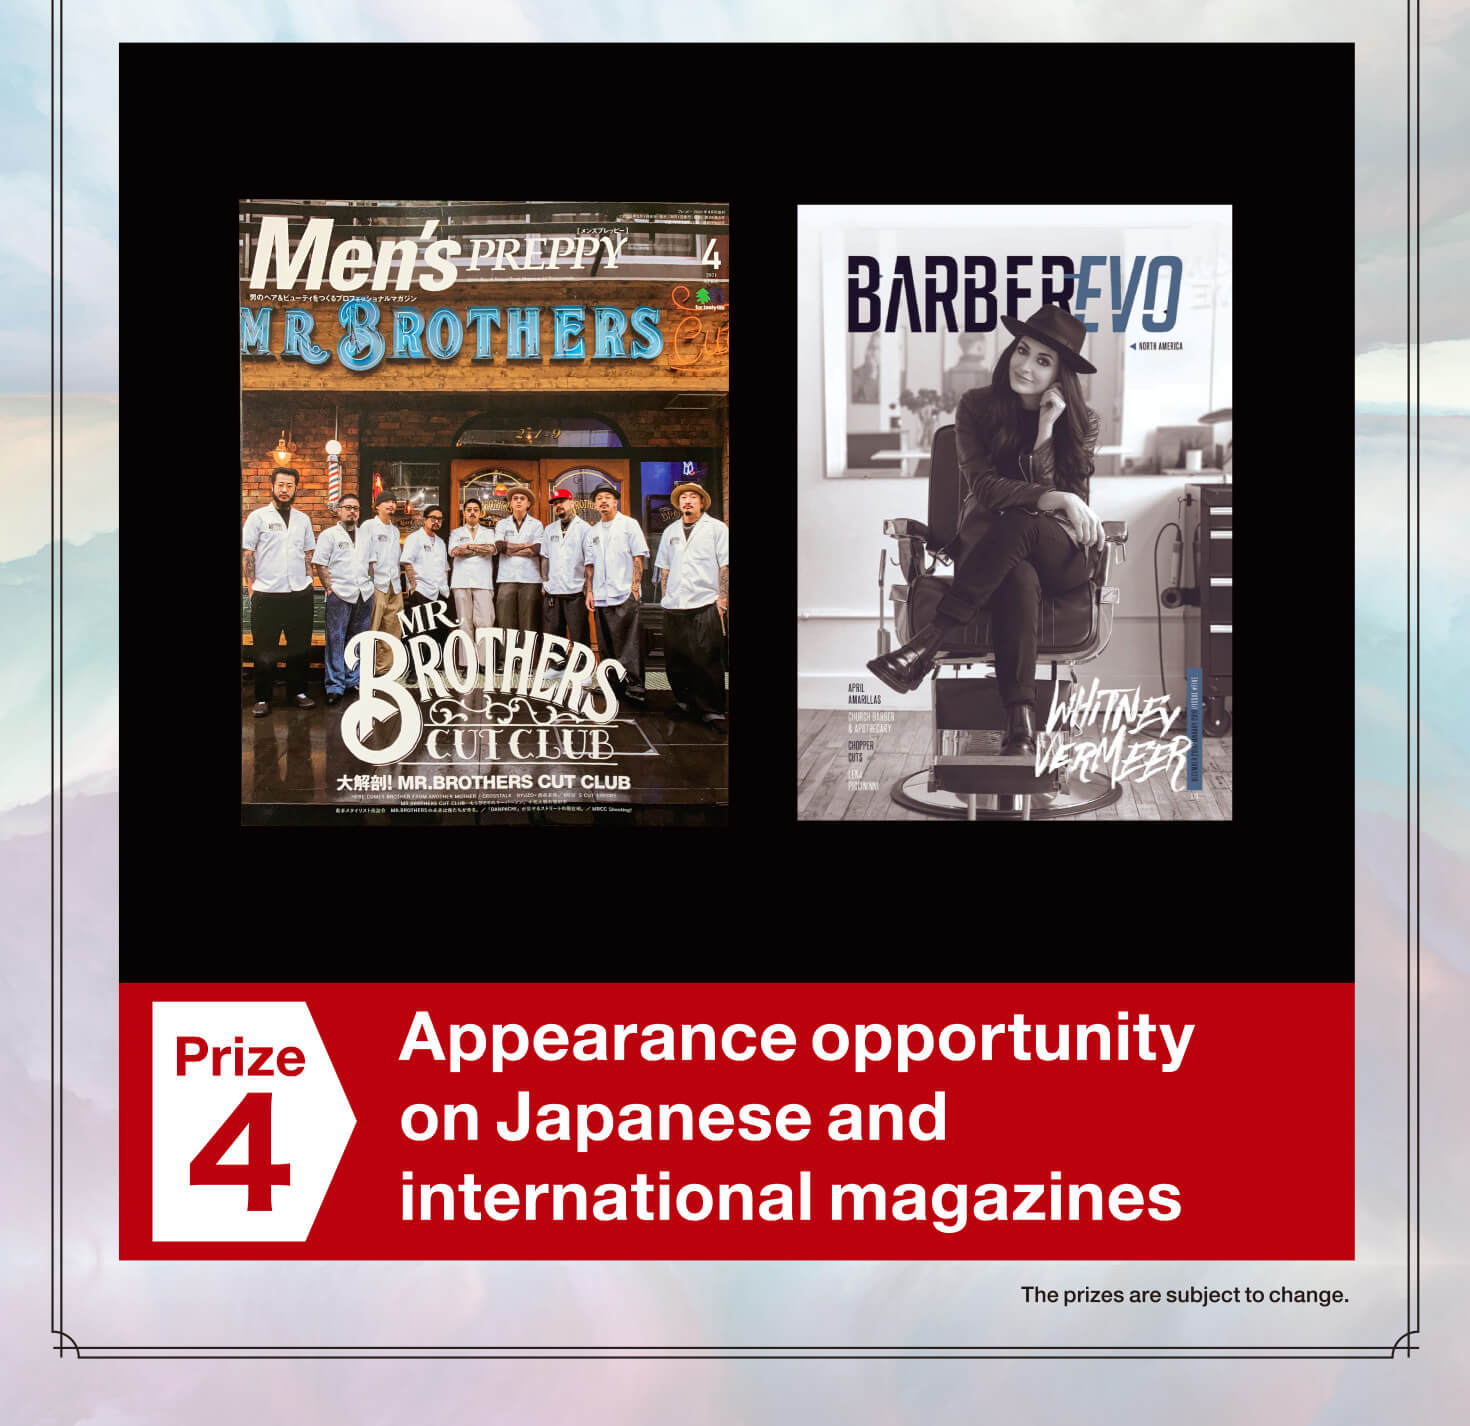 Prize 4 Appearance opportunity on Japanese and international magazines